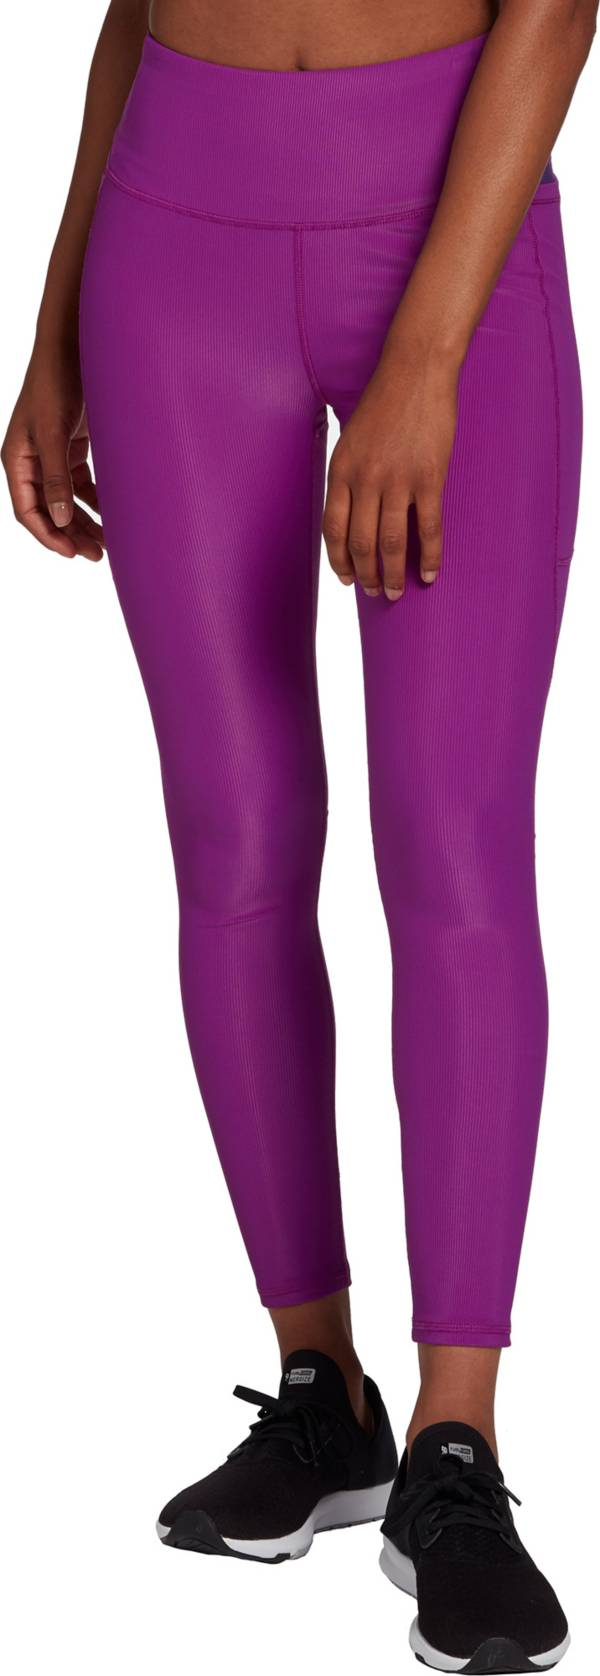 CALIA by Carrie Underwood Women's Energize Rib 7/8 Leggings product image